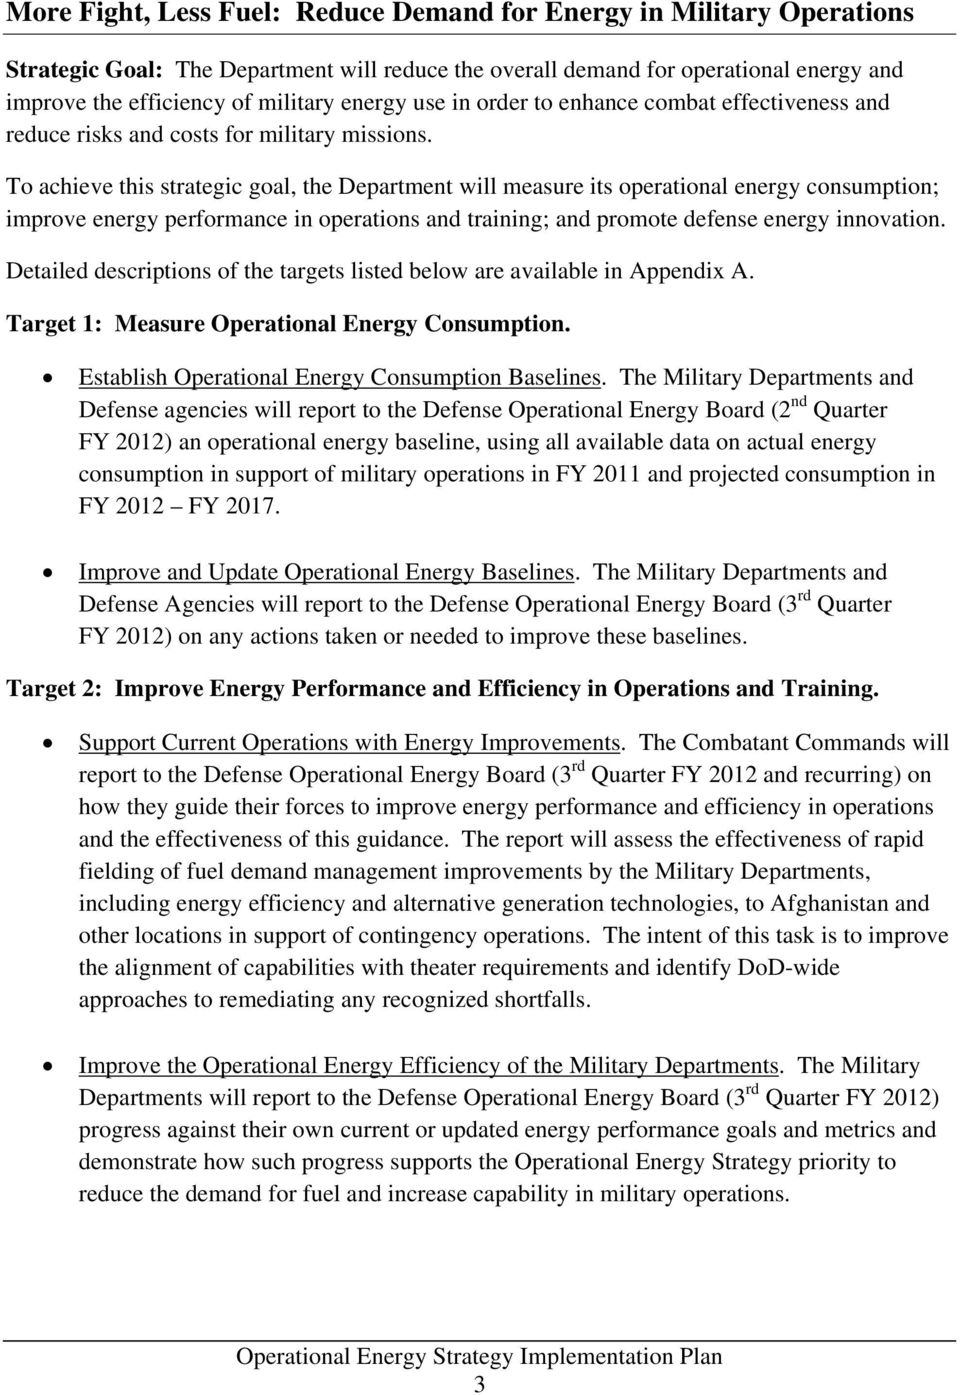 To achieve this strategic goal, the Department will measure its operational energy consumption; improve energy performance in operations and training; and promote defense energy innovation.